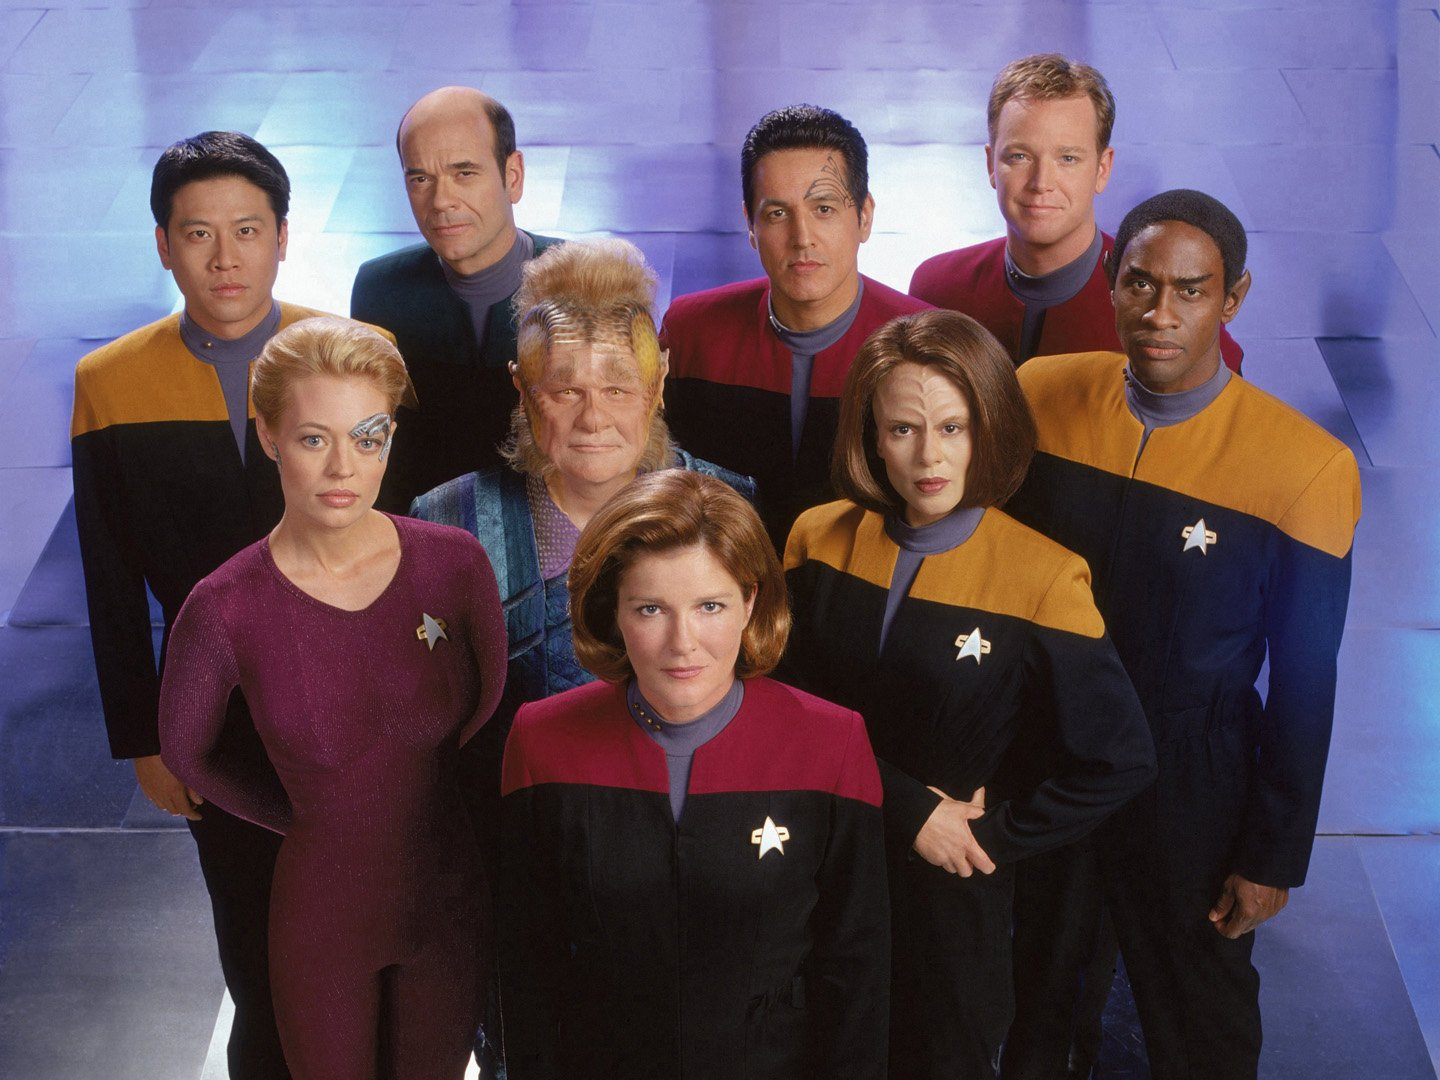 voyager2 Star Trek: All The Live-Action Movies & TV Shows, Ranked!